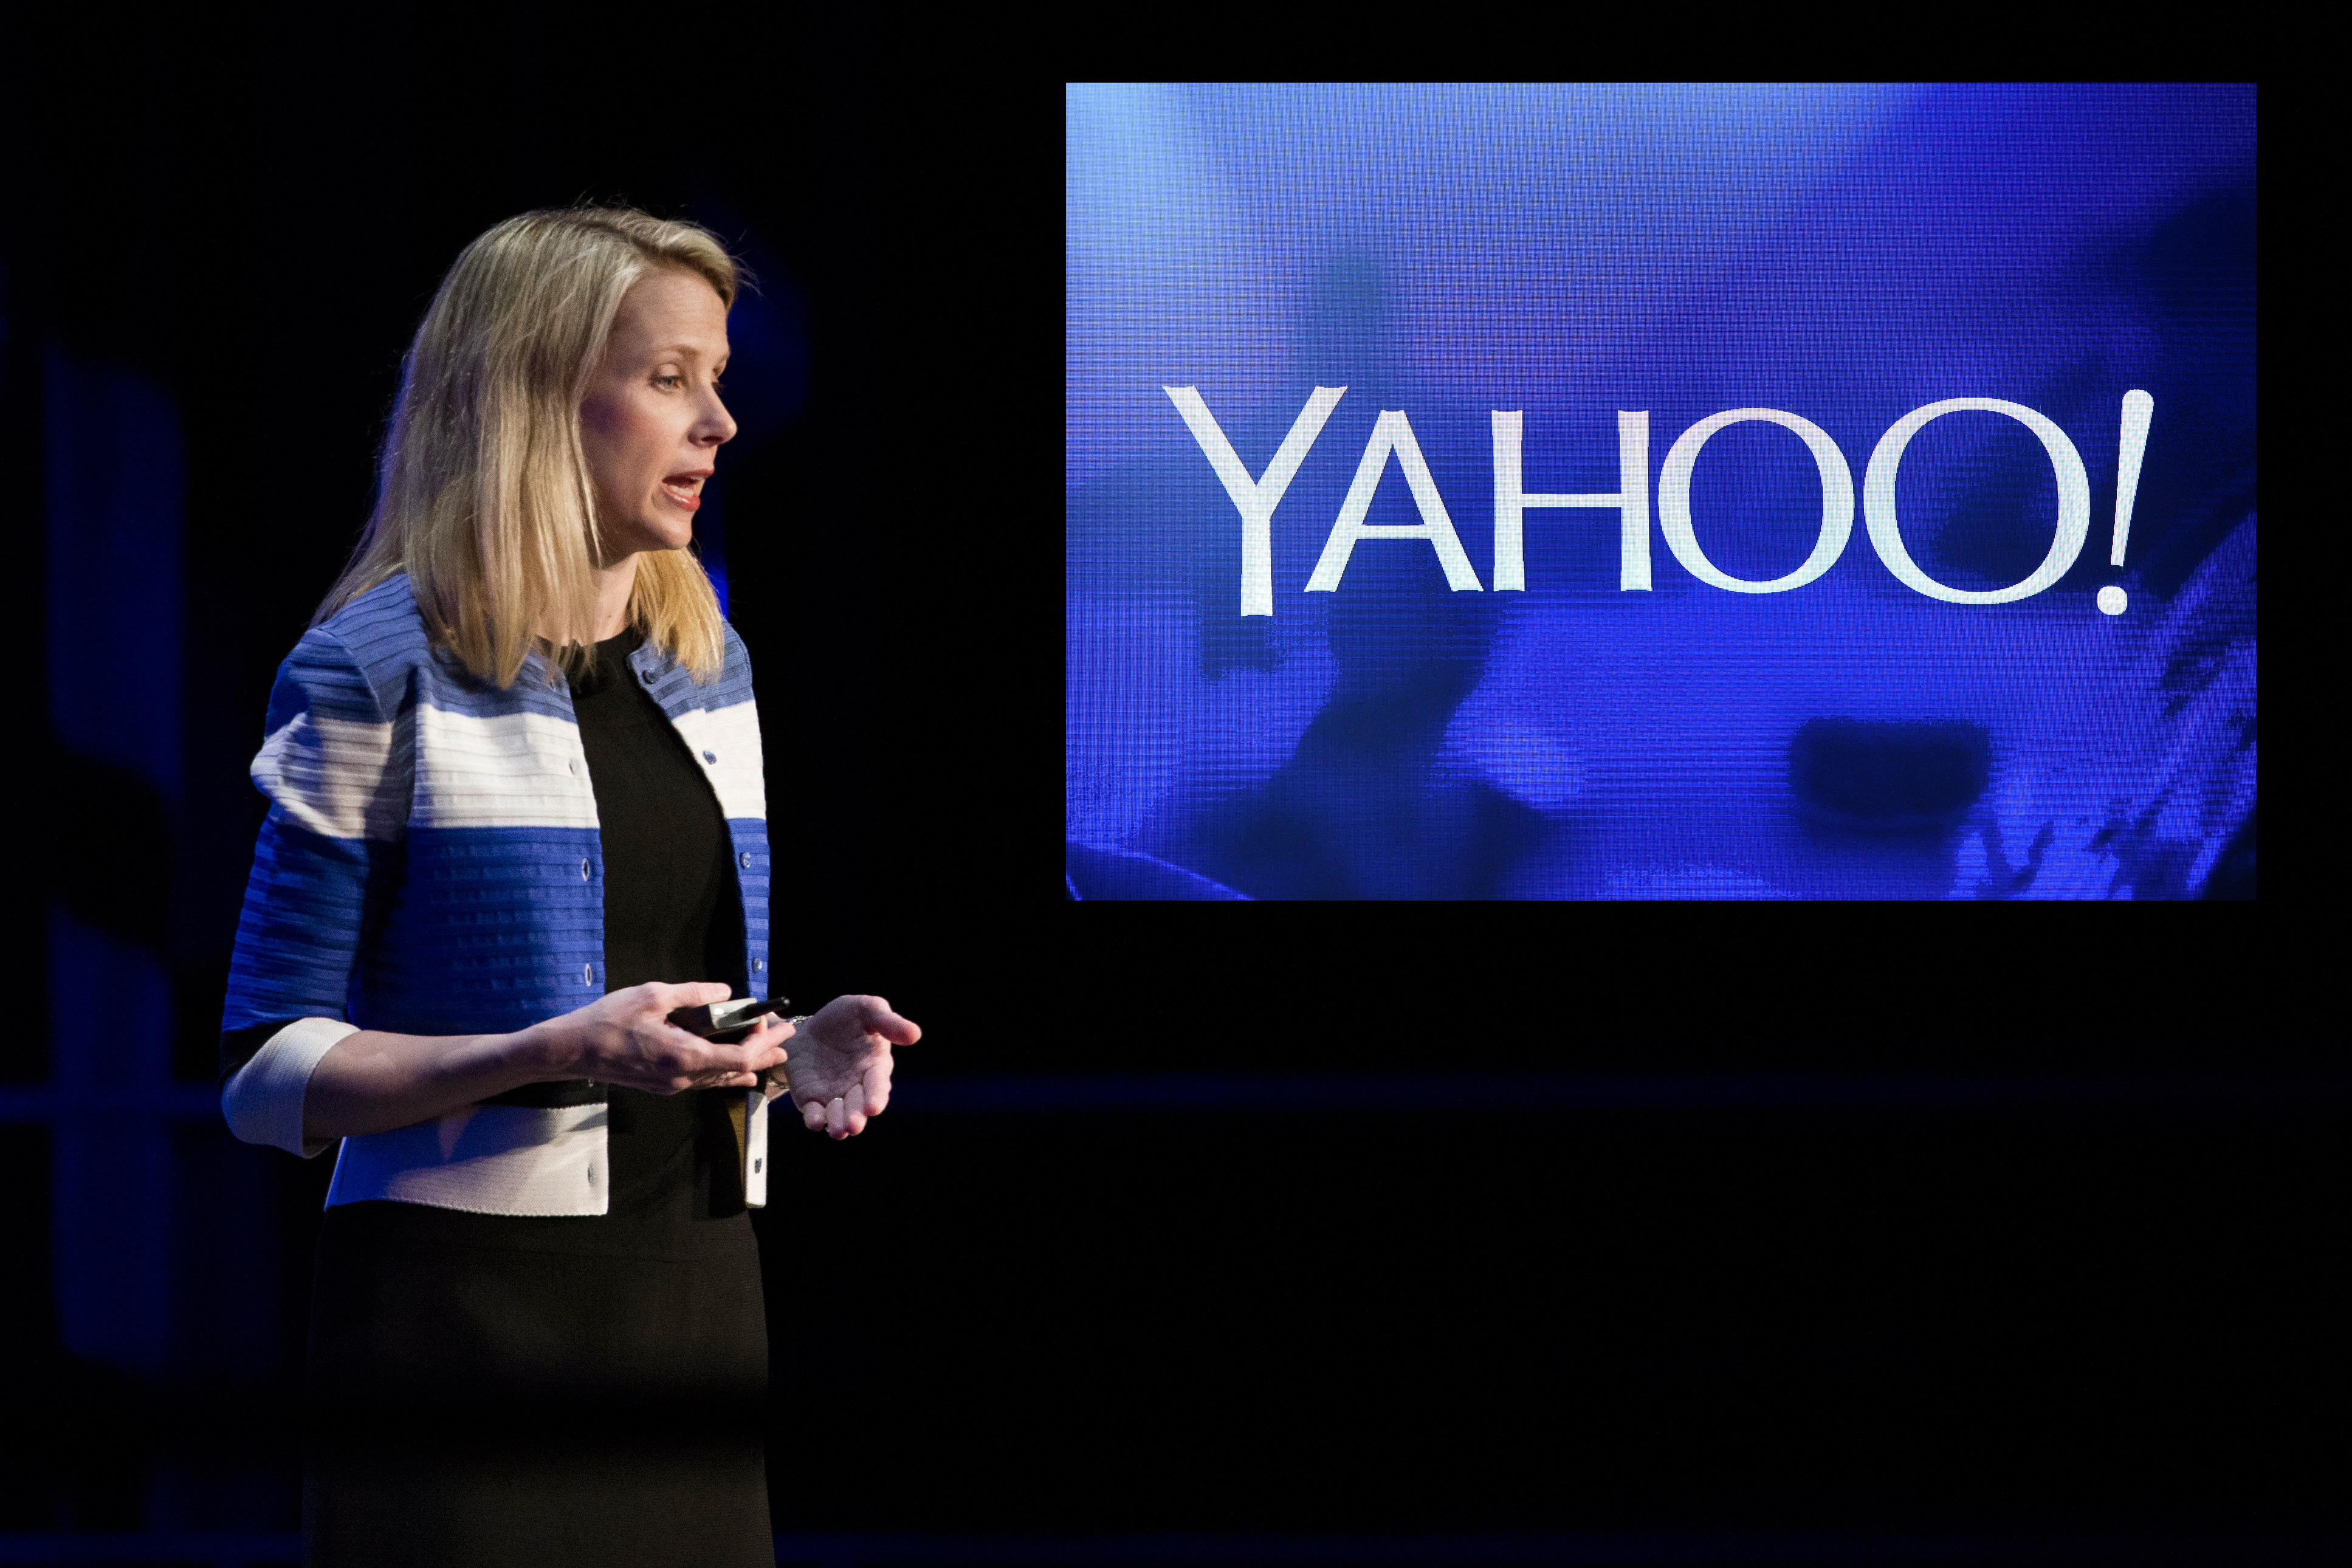 Yahoo CEO Marissa Mayer to Get Almost $55M If Fired